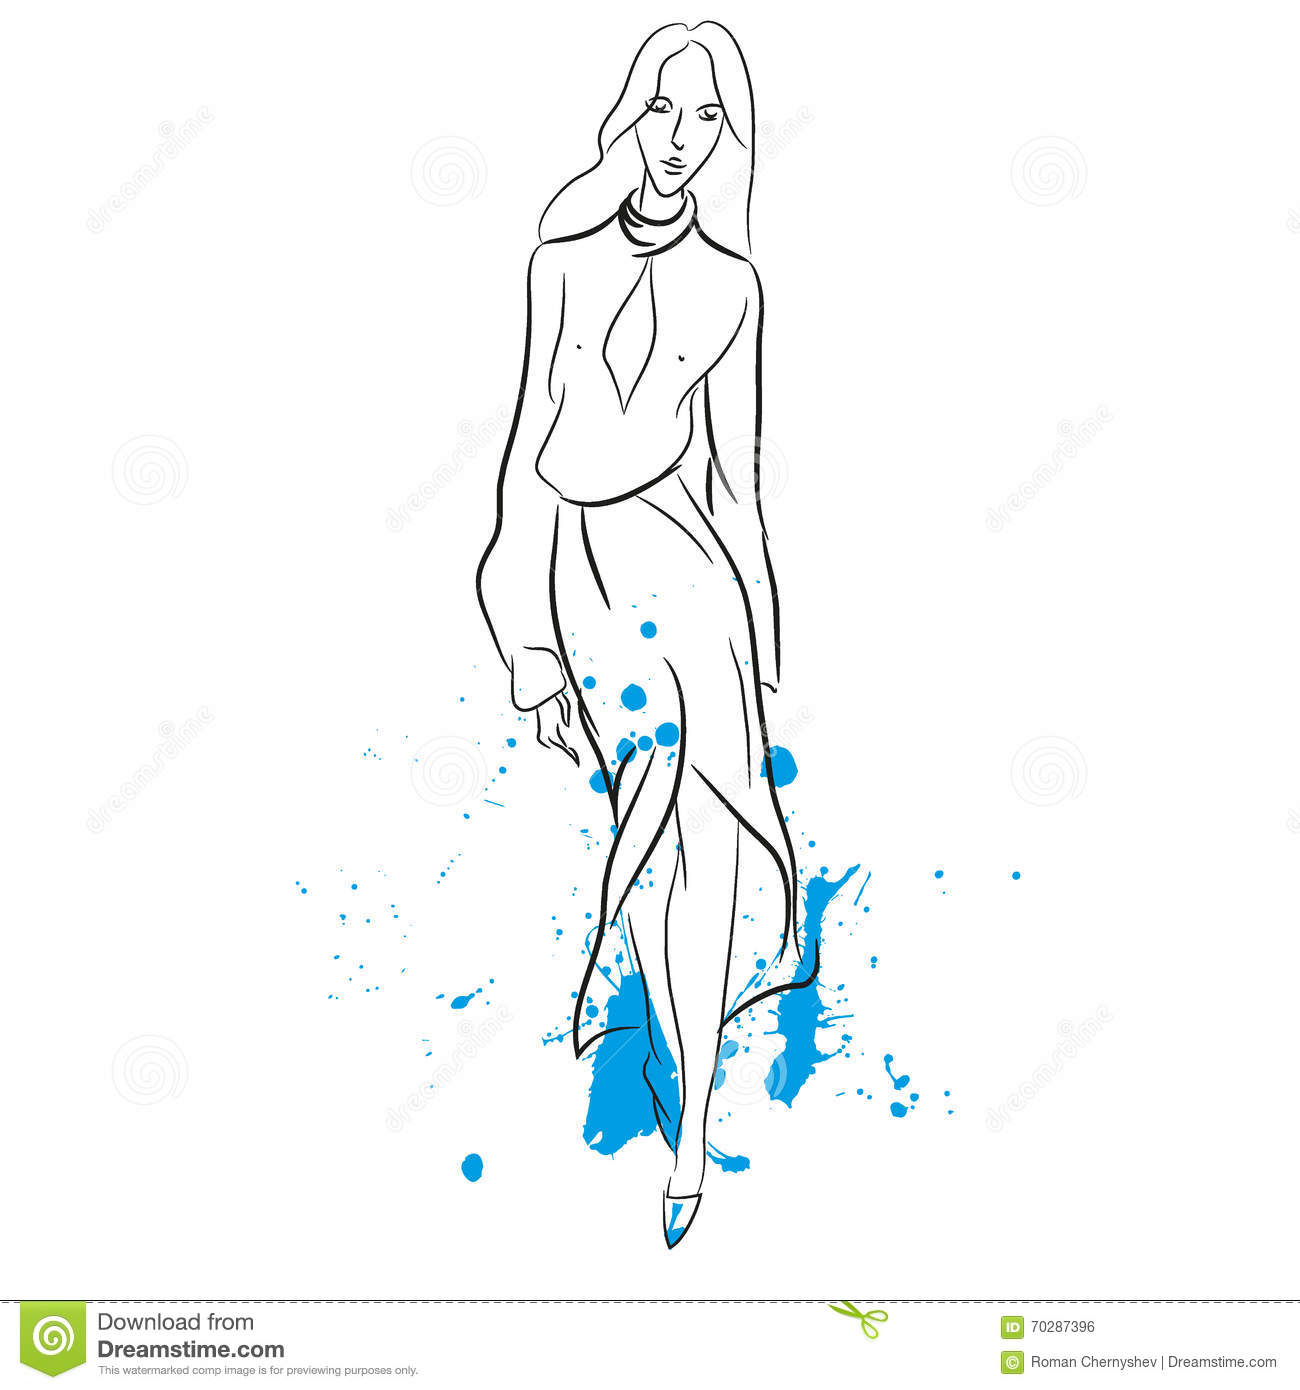 Abstract Painting With Woman In Long Dress Stock Vector - Image 70287396